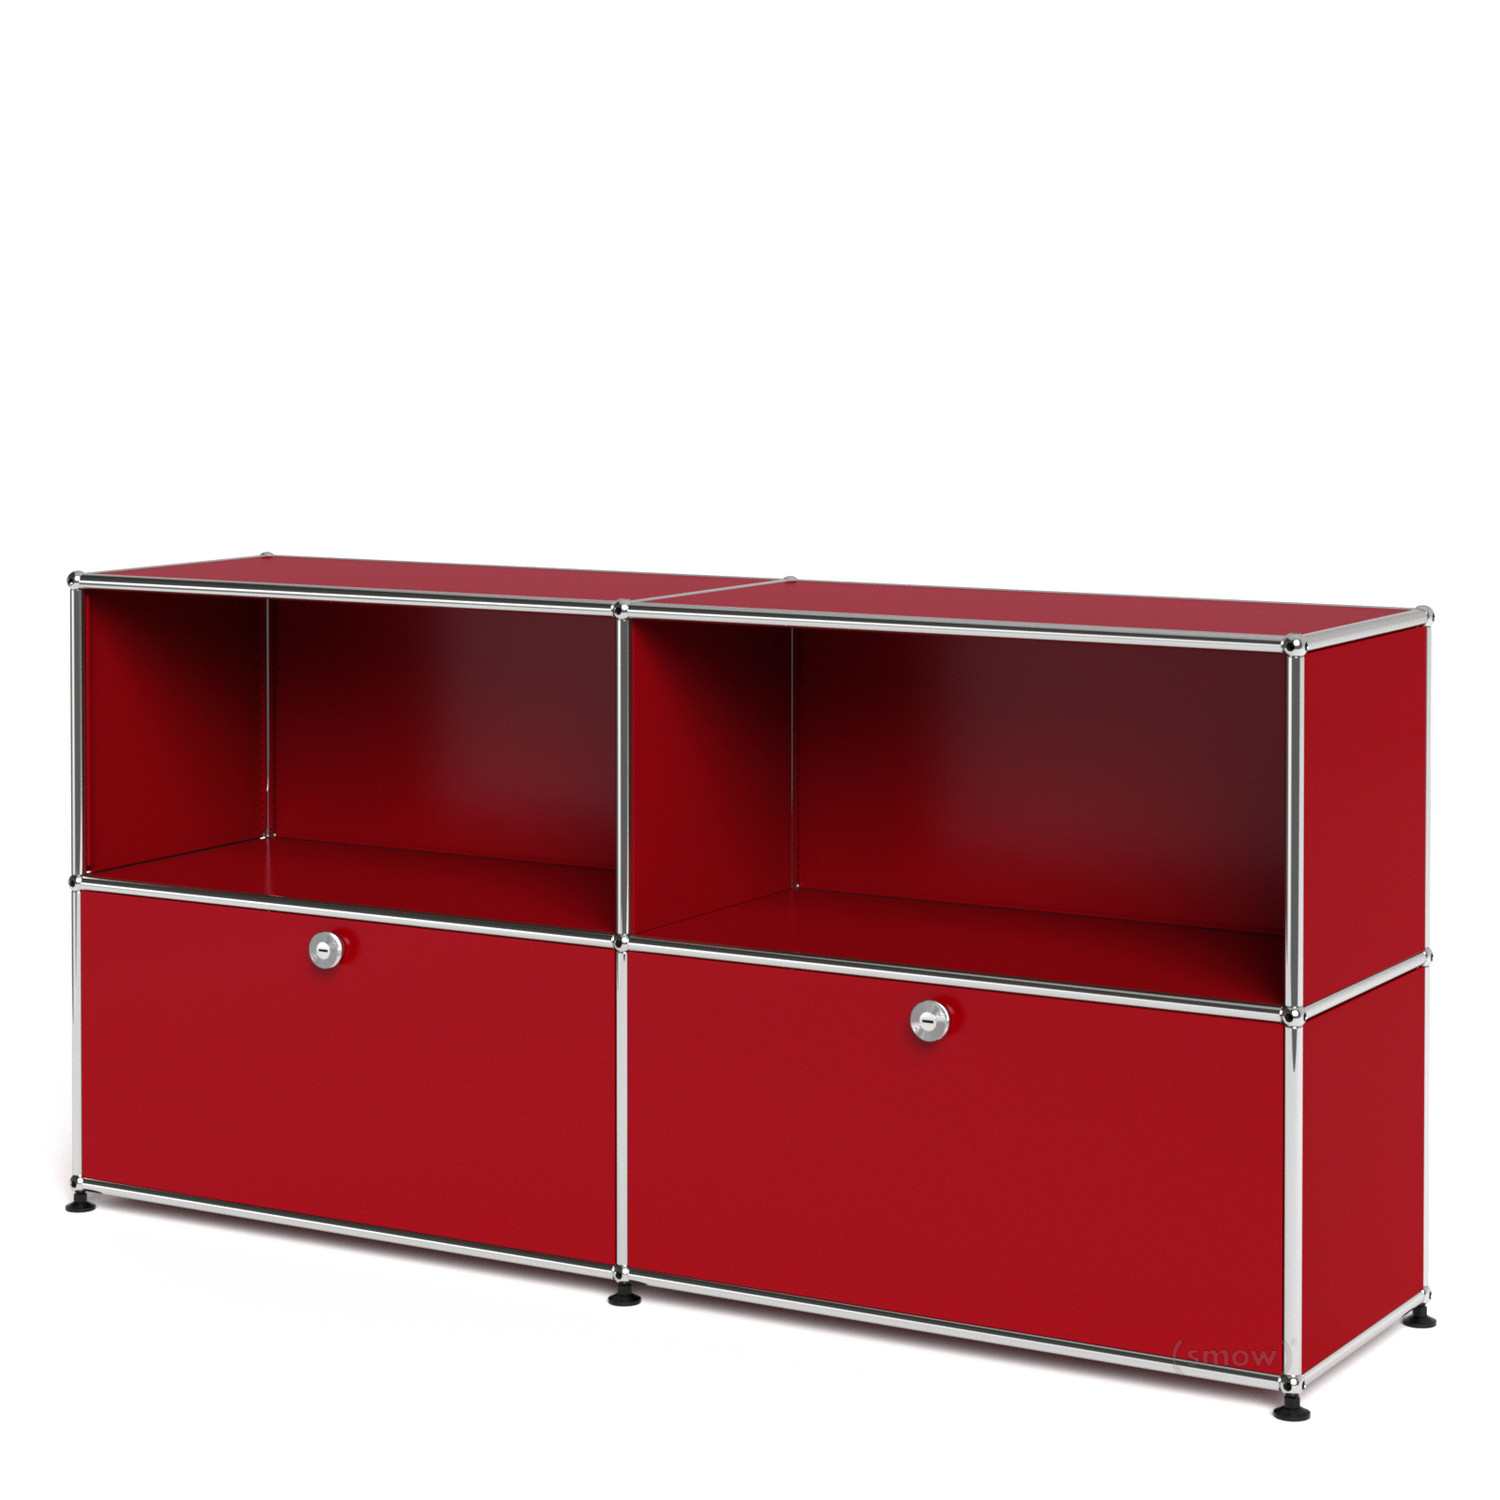 Usm haller sideboard l with 2 drop down doors usm ruby for Sideboard usm